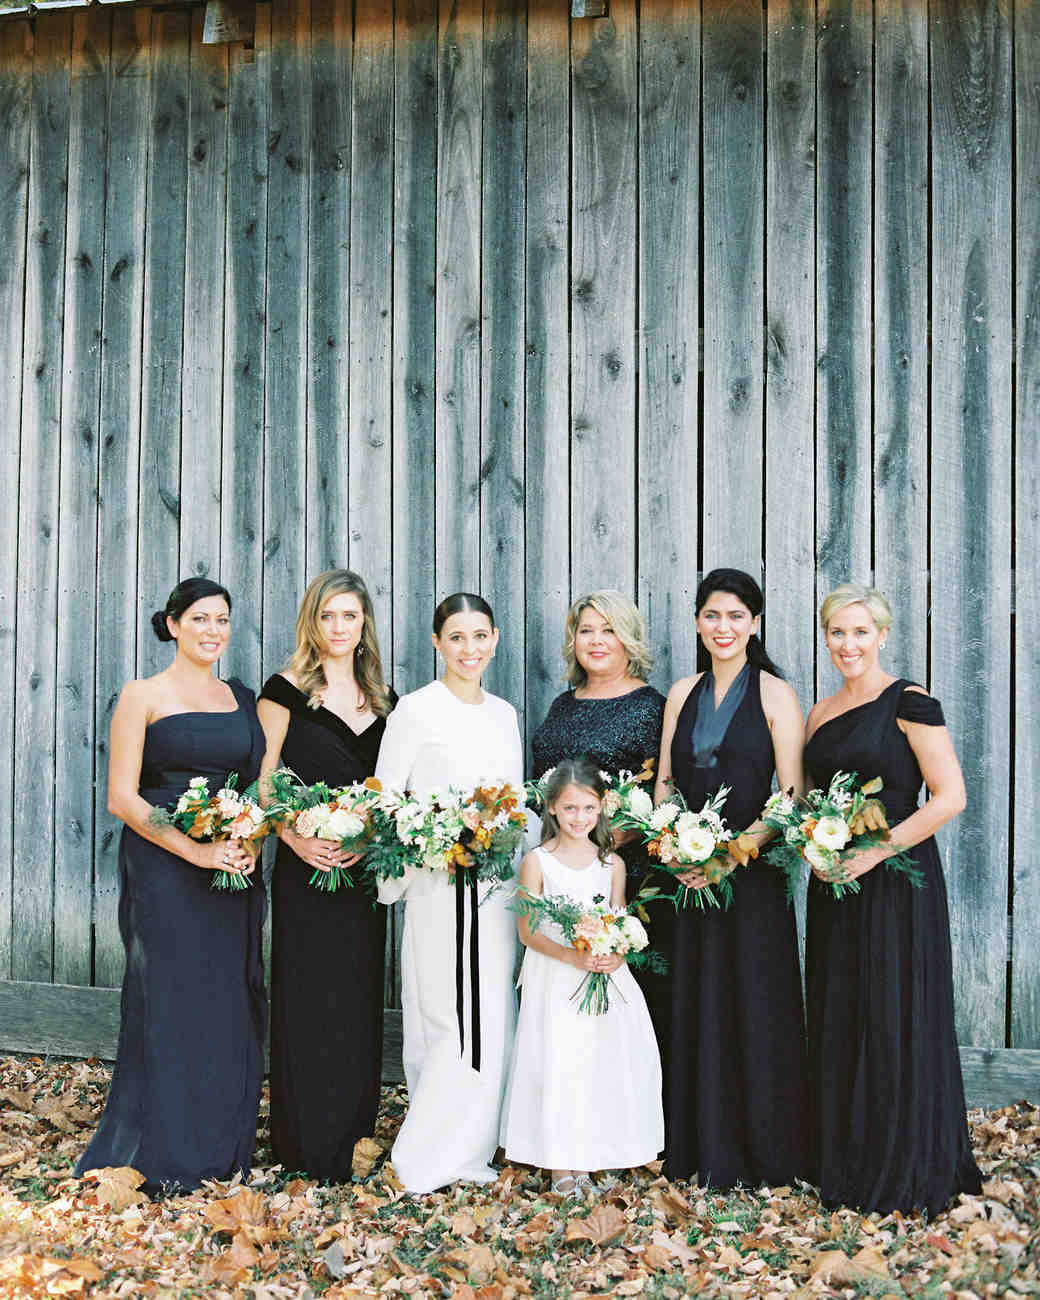 wedding bridesmaids black dresses